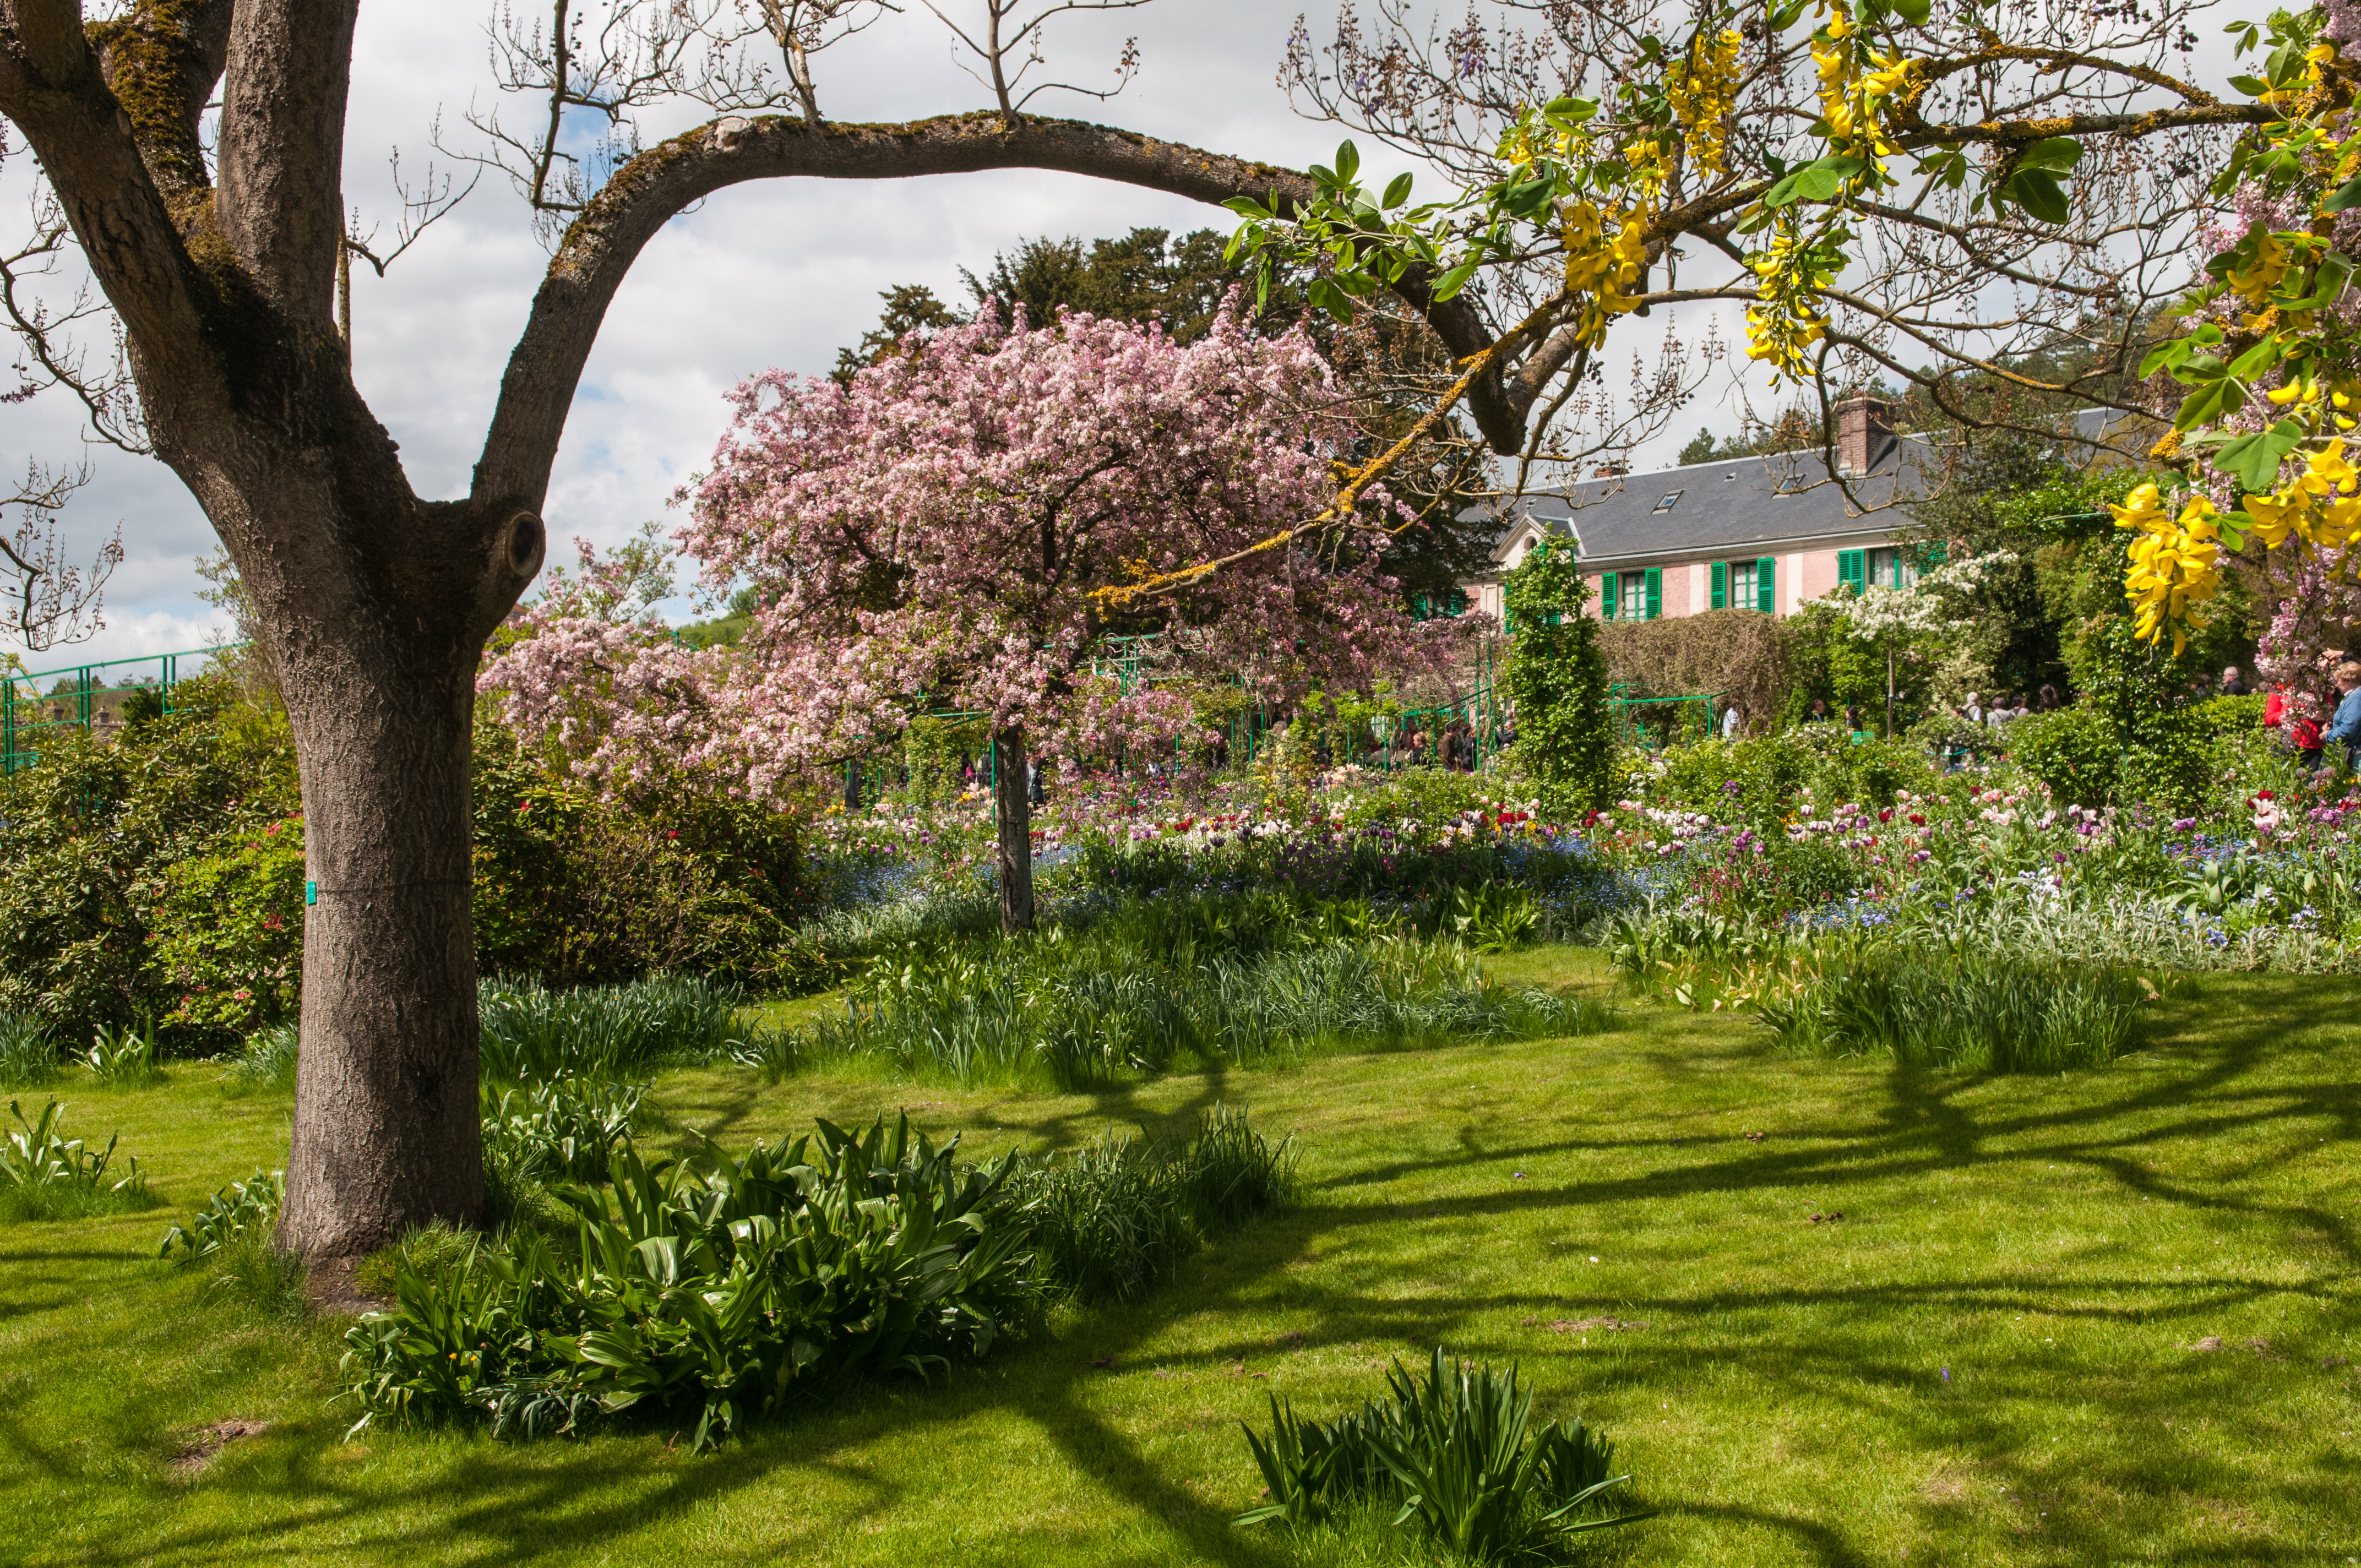 File:Claude Monet house and garden in Giverny (8742610088).jpg ...